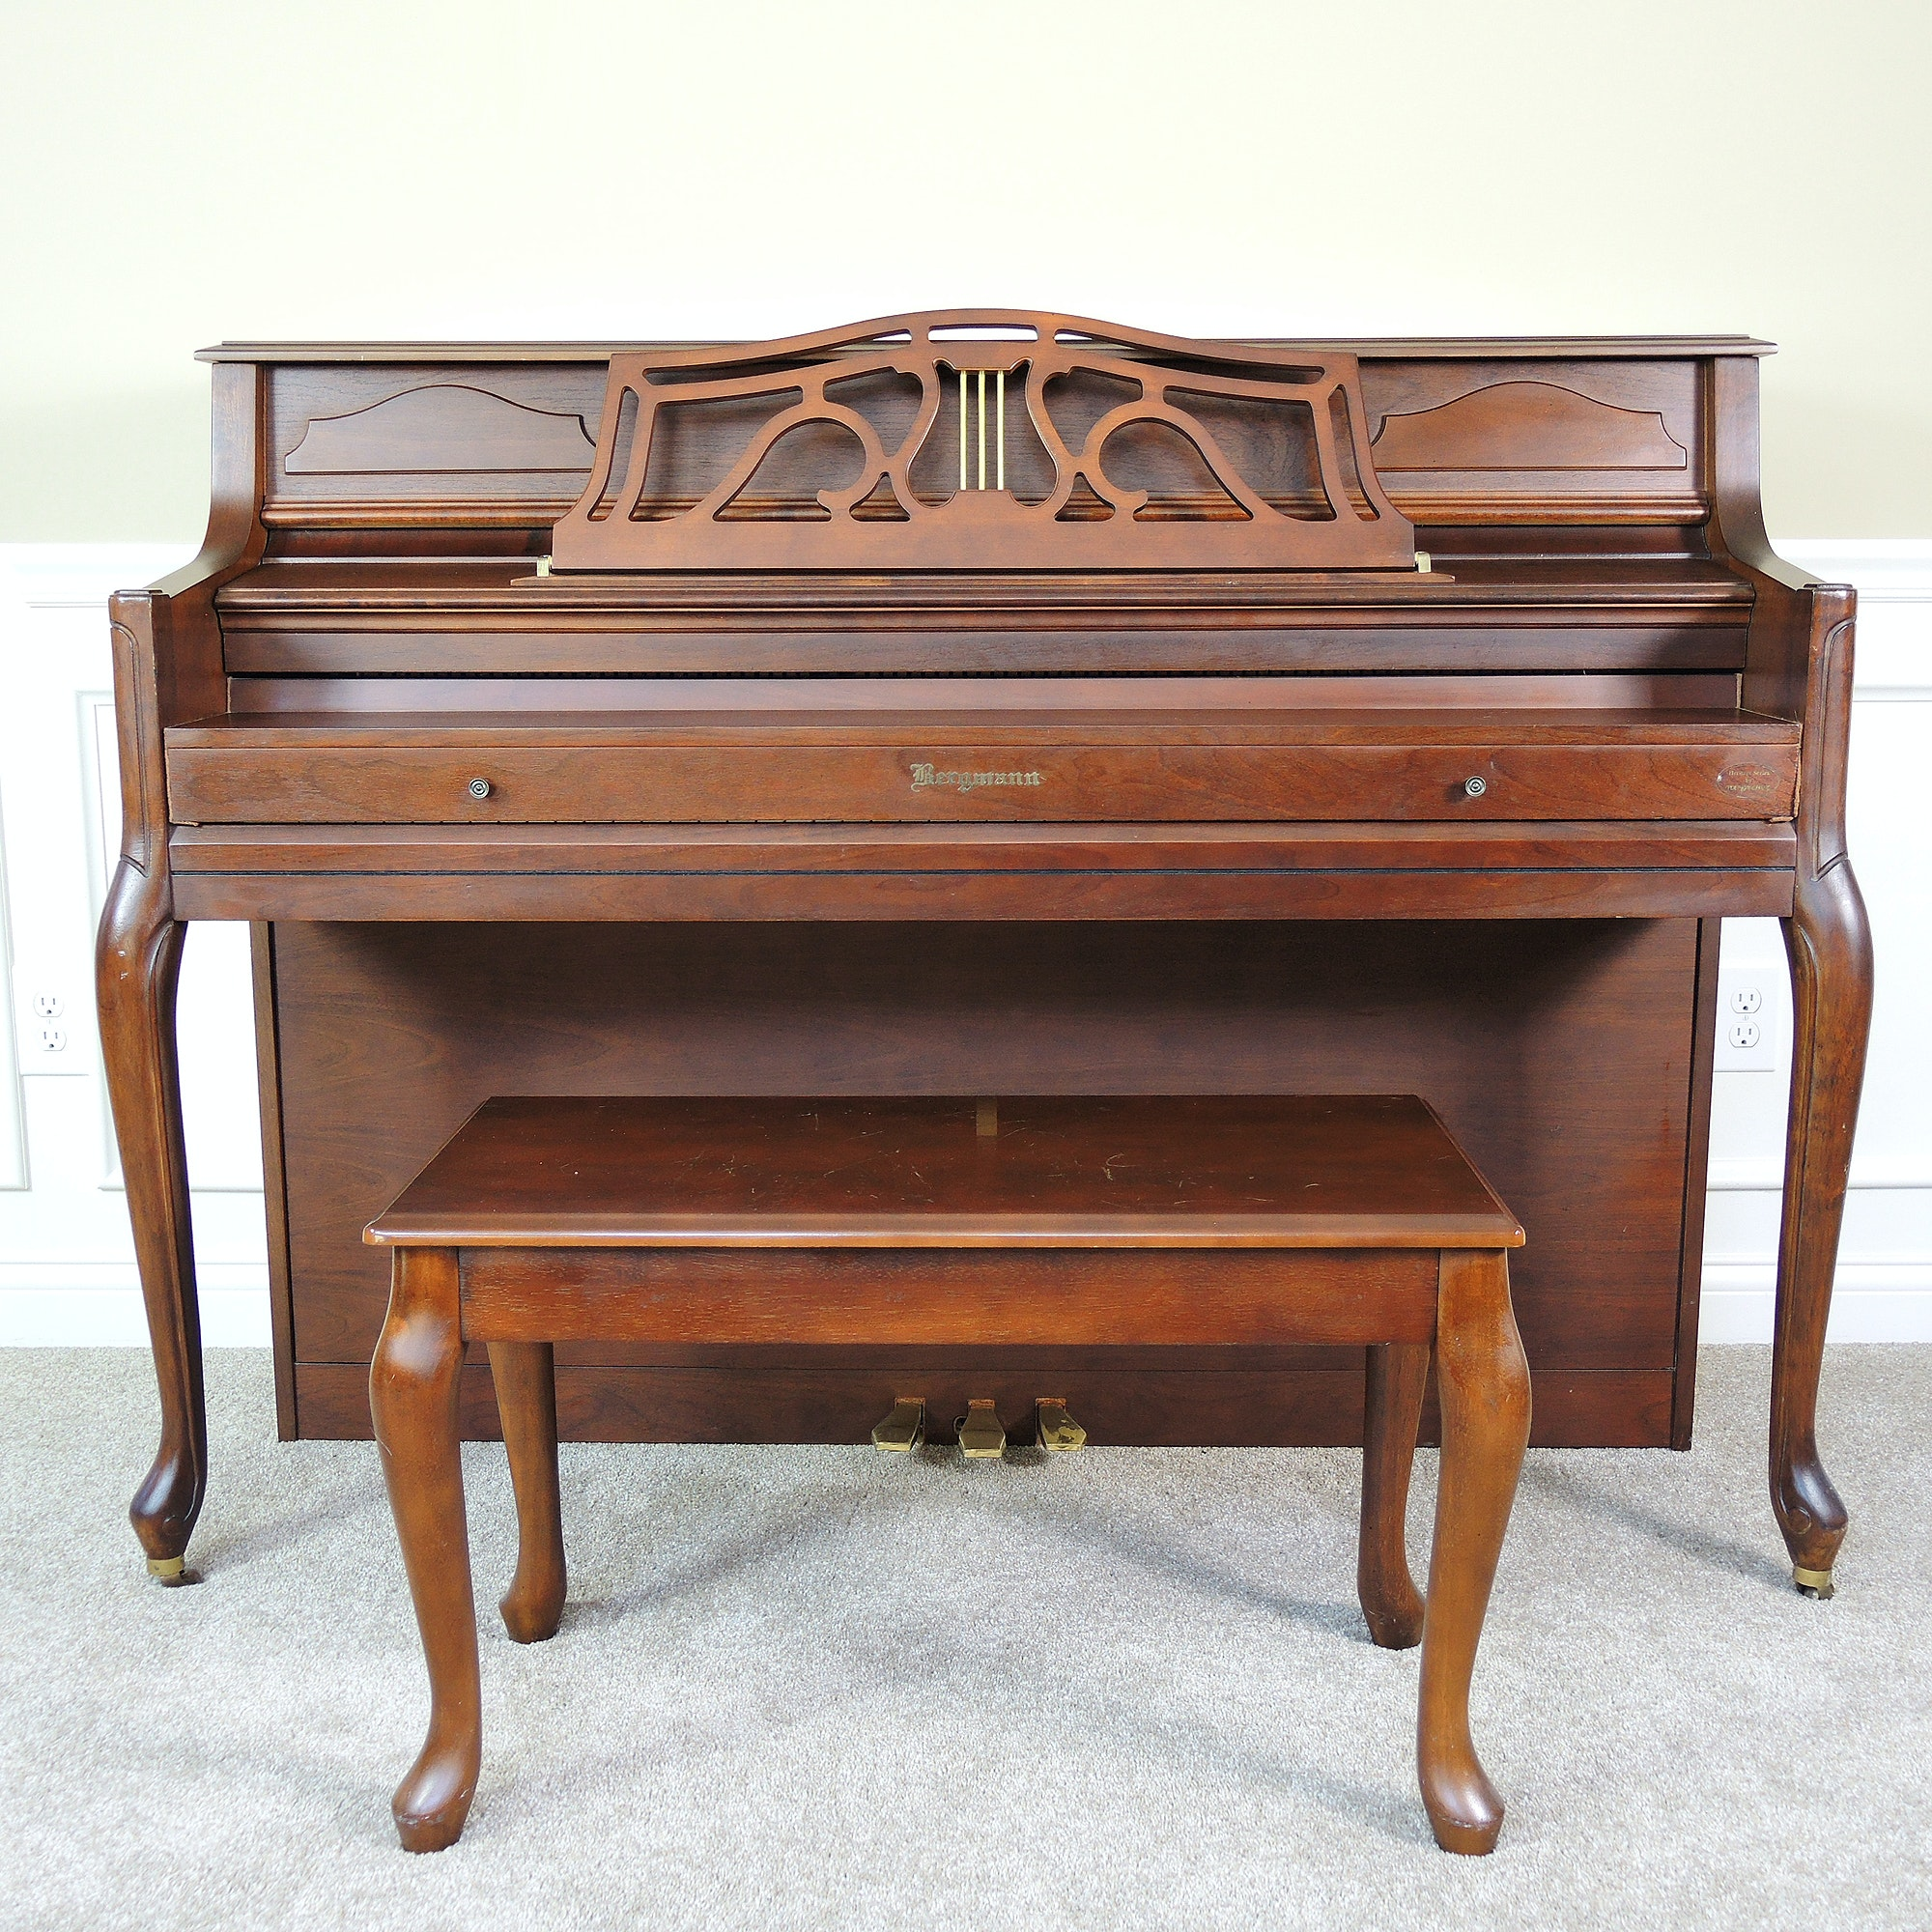 Bergmann Console Piano with Bench and Sheet Music